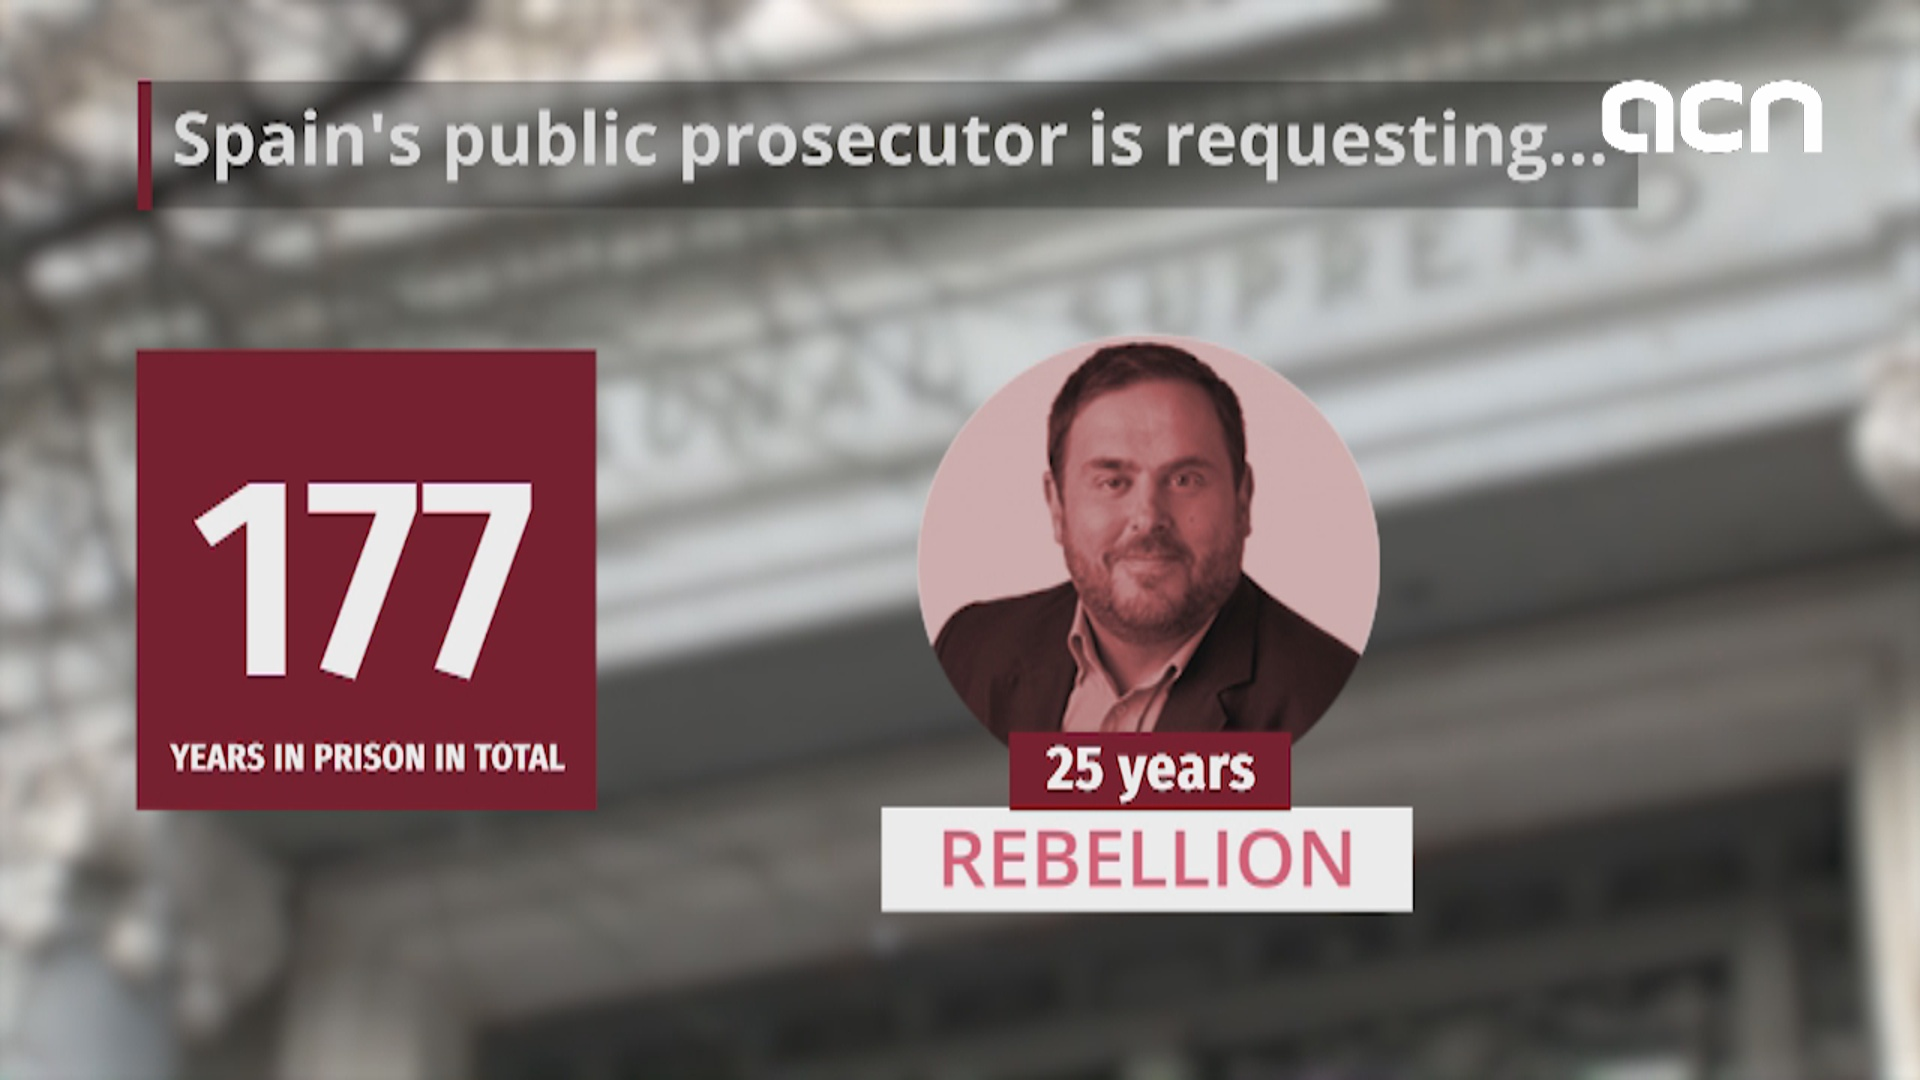 What are the prison sentences proposed by Spain's prosecutor for each of the officials?